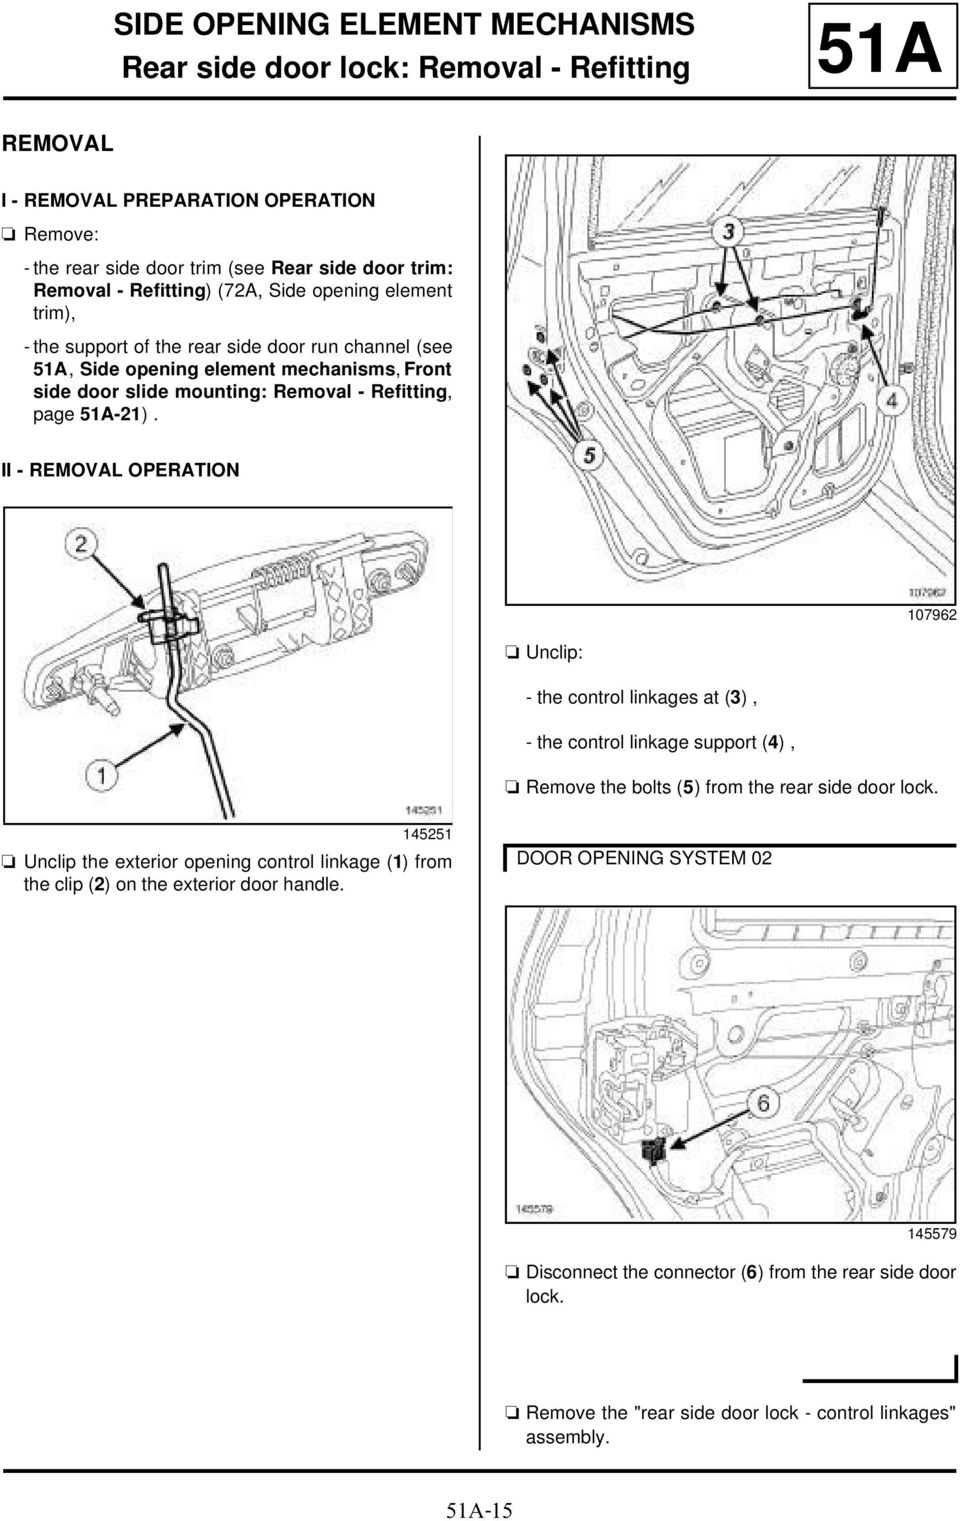 II - OPERATION 107962 a Unclip: - the control linkages at (3), - the control linkage support (4), a Remove the bolts (5) from the rear side door lock.